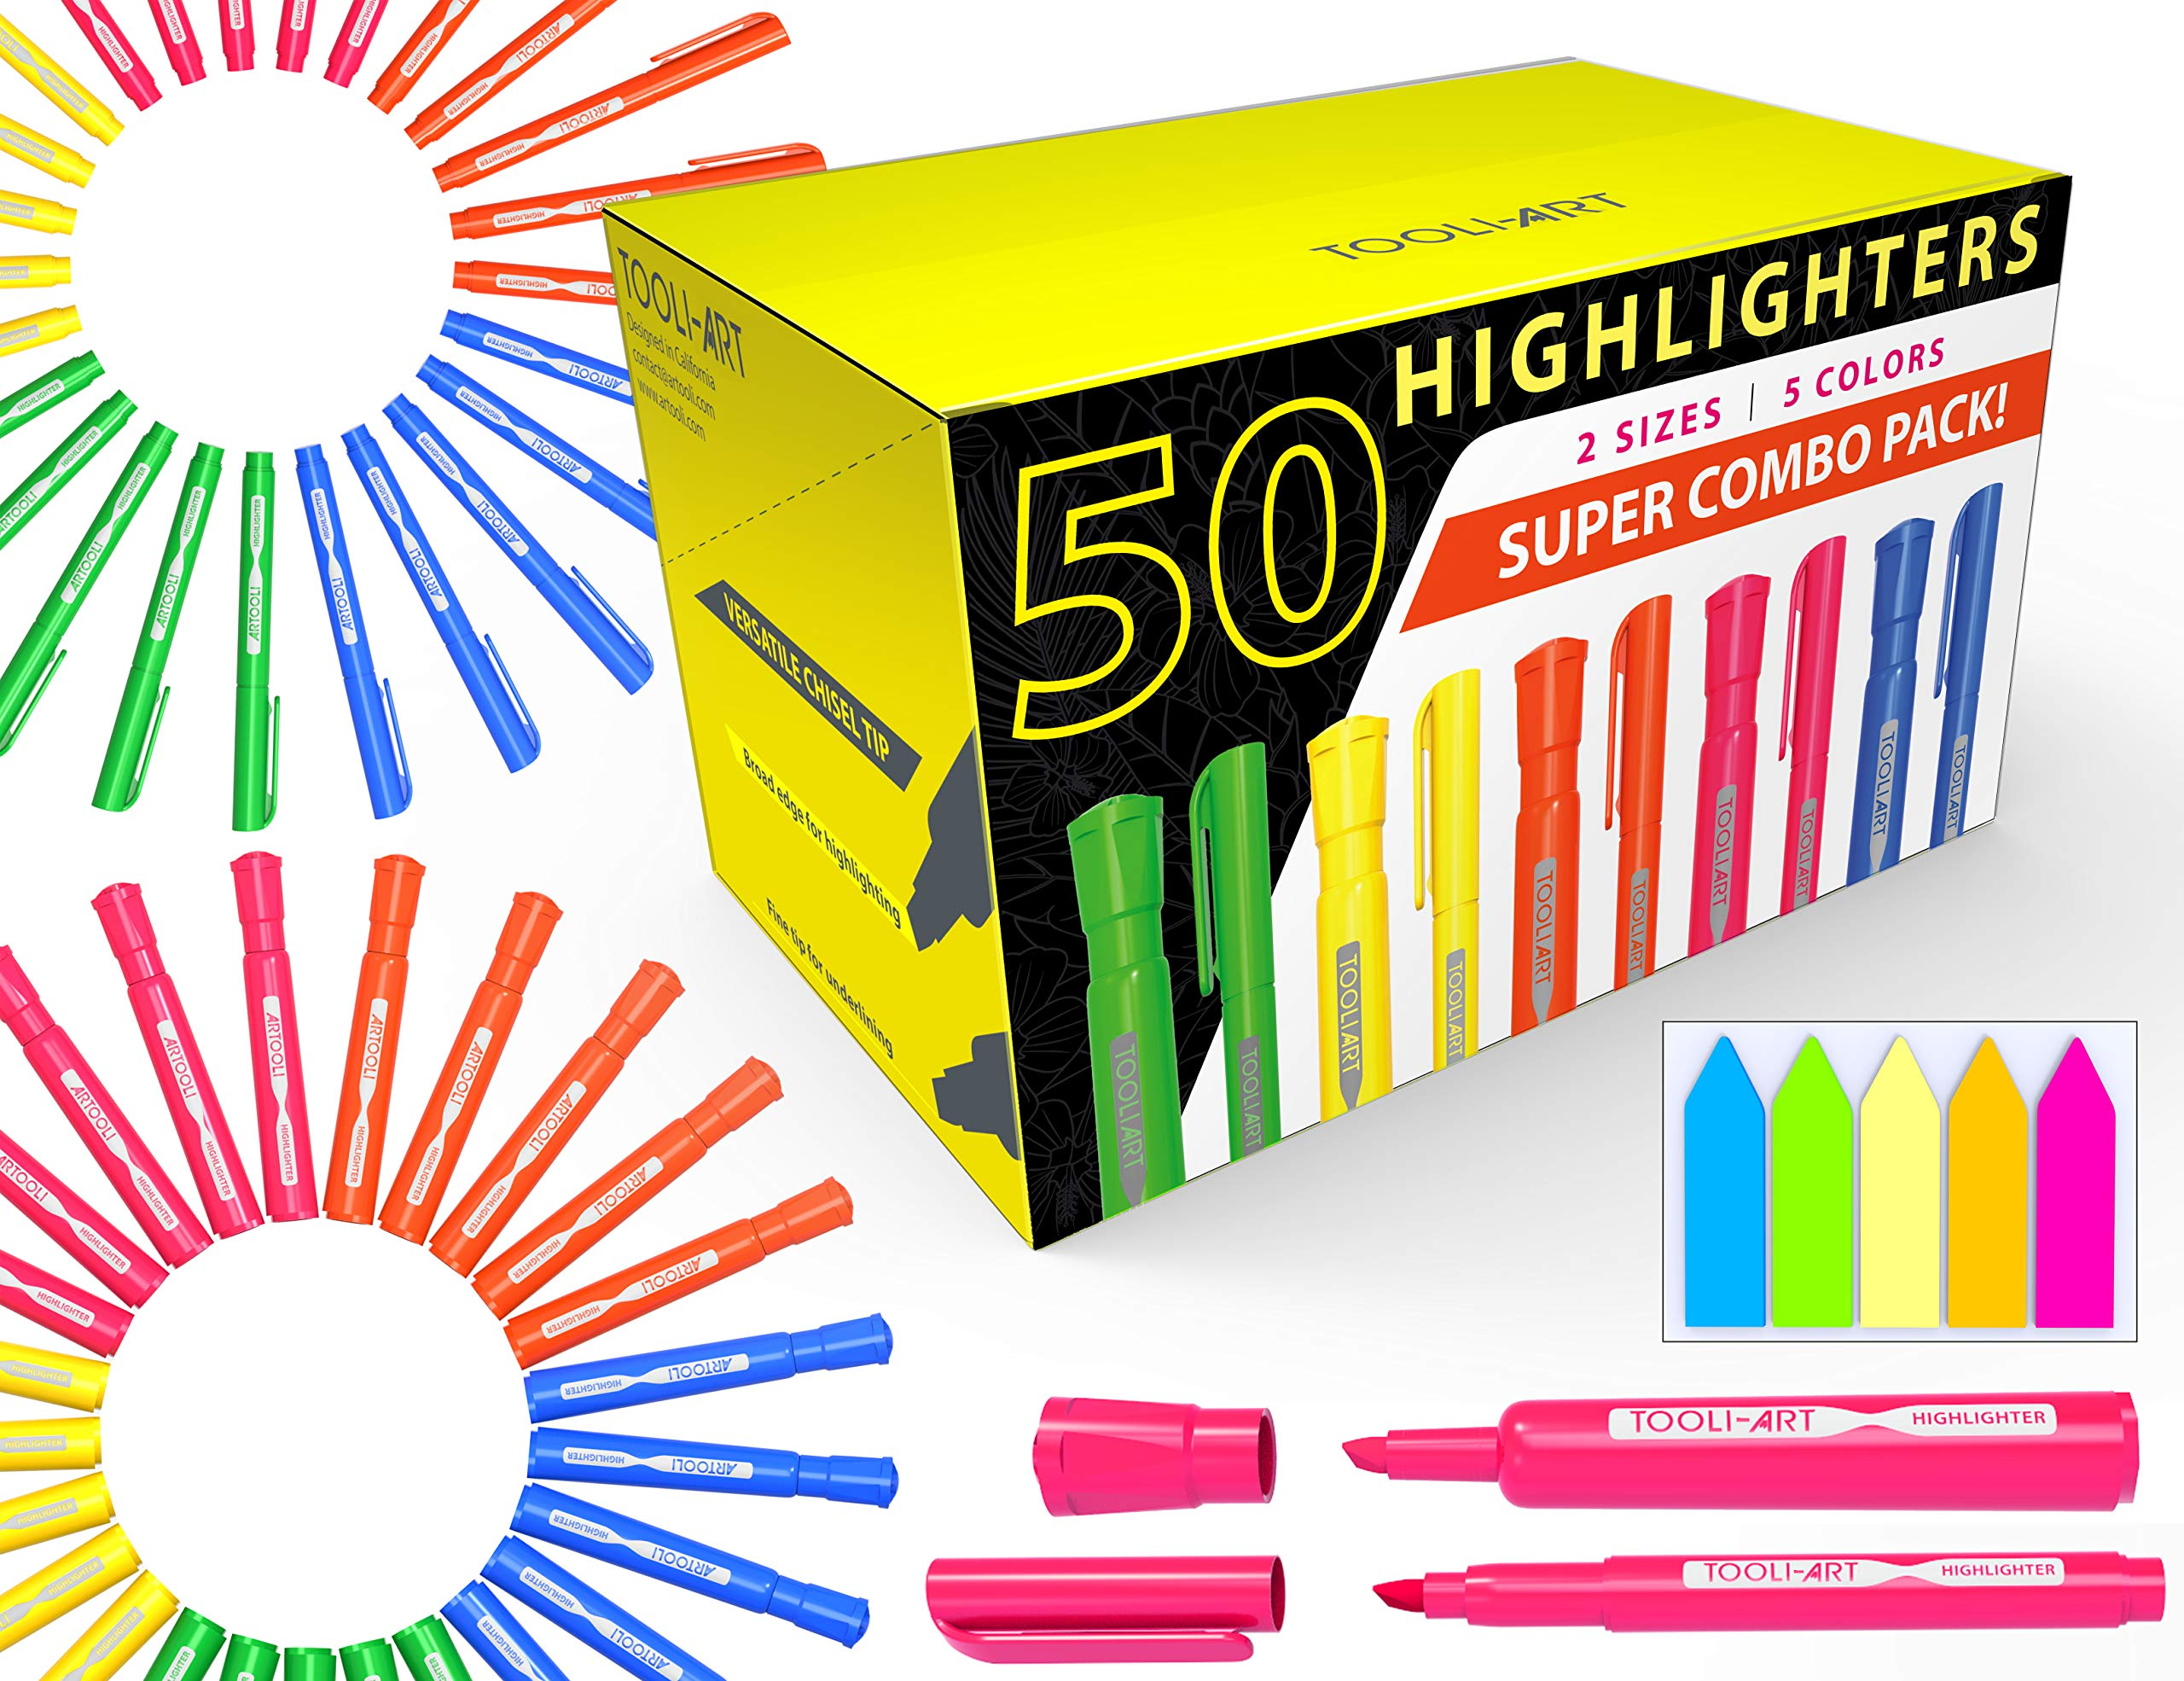 TOOLI-ART 50 Chisel Tip Highlighters Markers Bulk Assorted Colors, Tank and Pen Type Combo, Bonus Sticky Index Tabs, 5 Vivid Fluorescent Colors: Office, School, Home, Students, Teachers, Bible Study